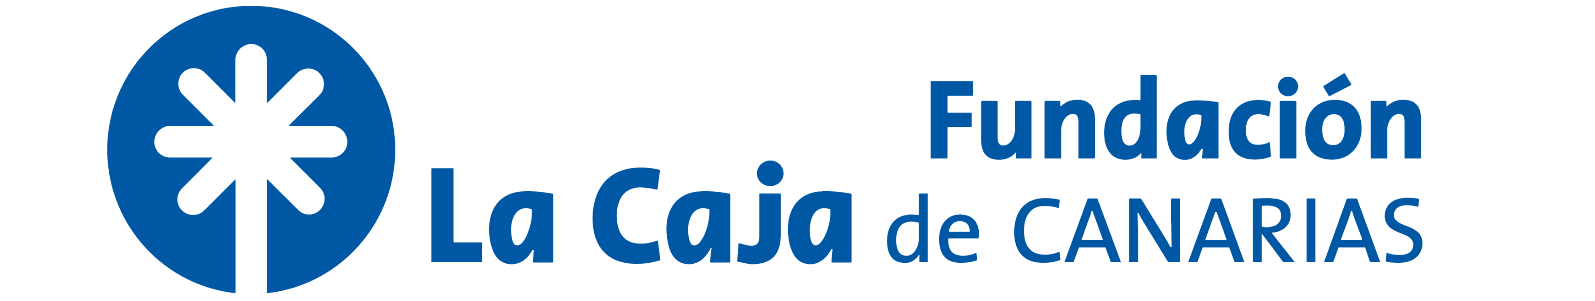 Fundación La Caja de Canarias